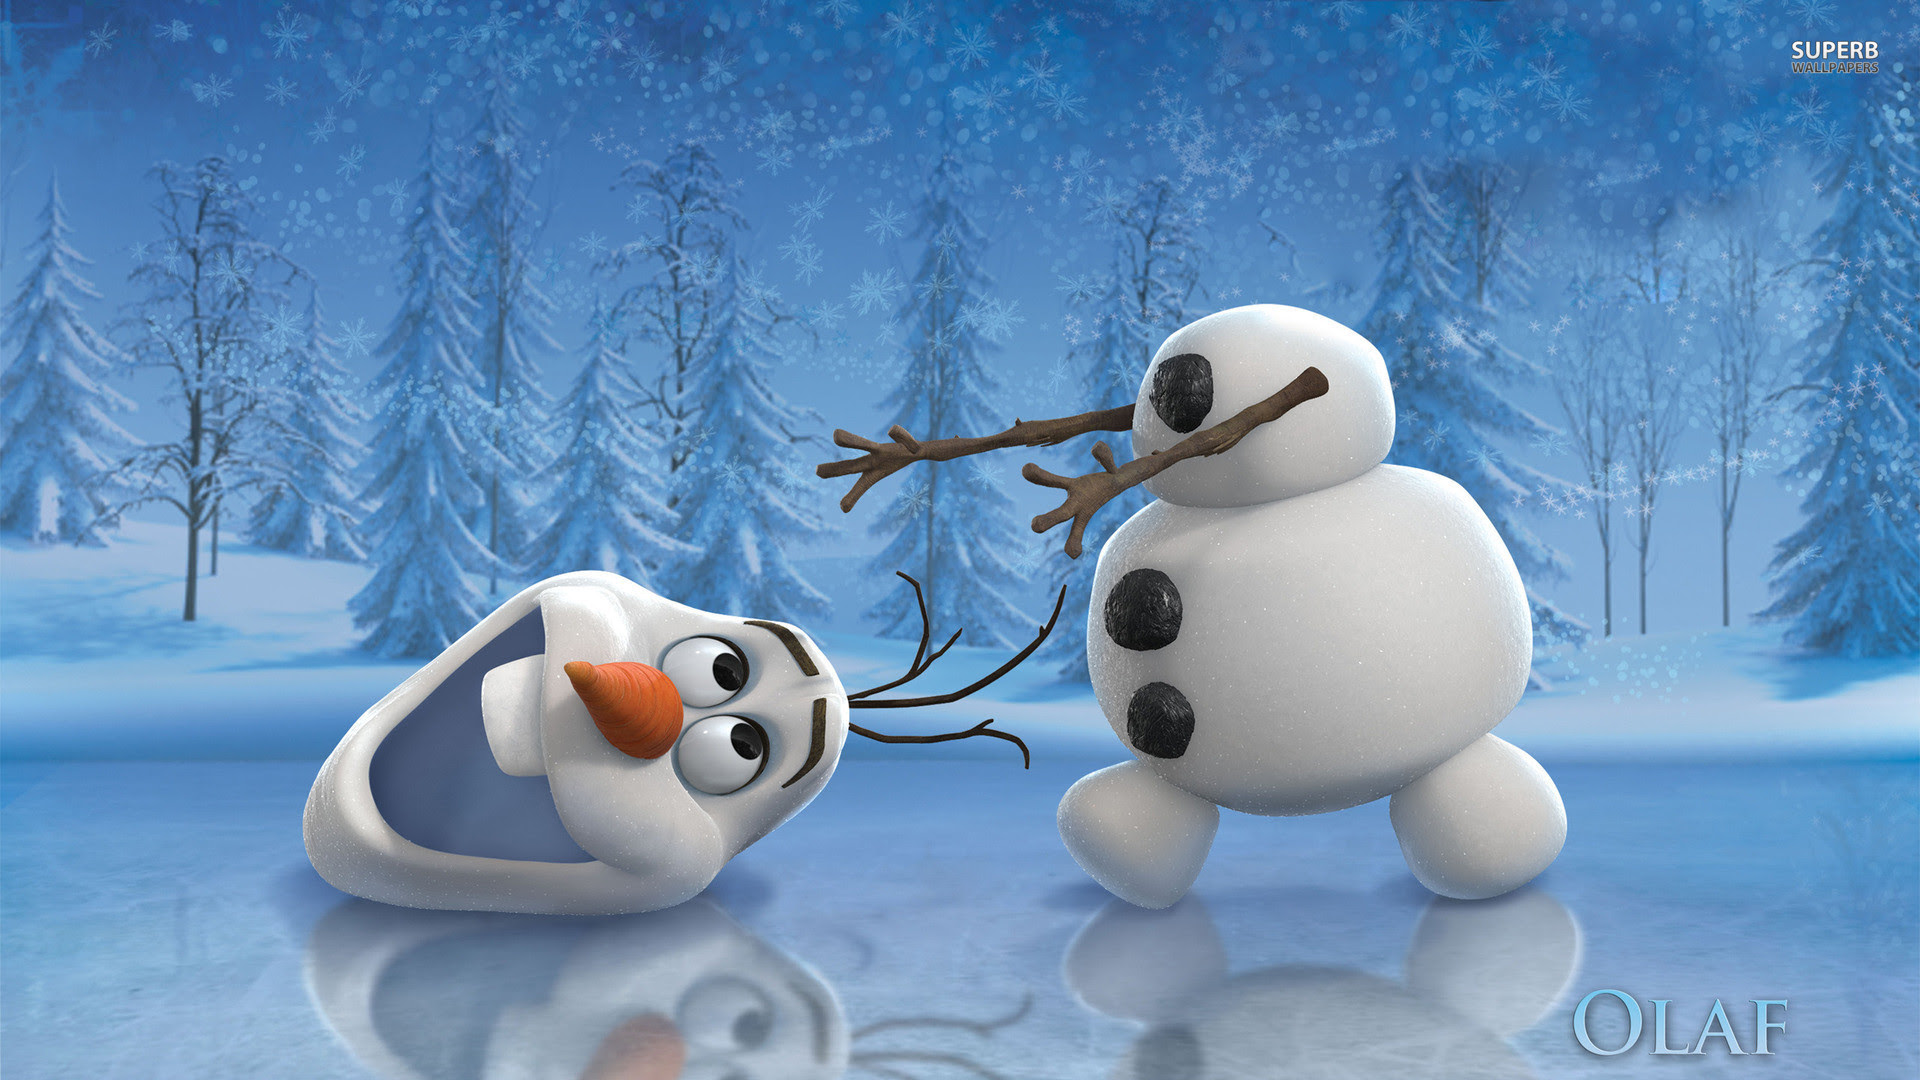 Christmas Olaf Wallpapers Backgrounds 55 Images